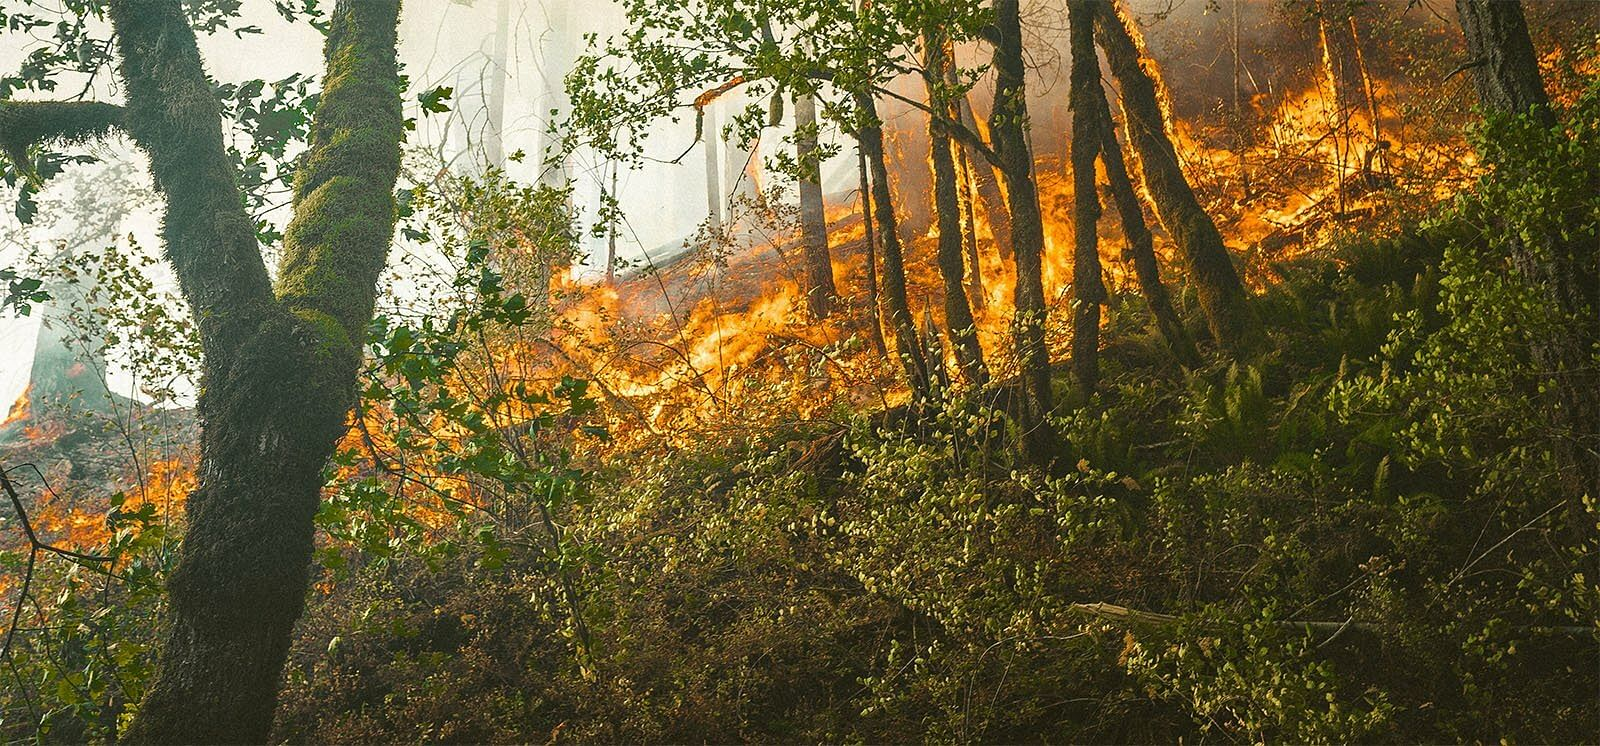 How Drones are Useful in Forest Fire Response